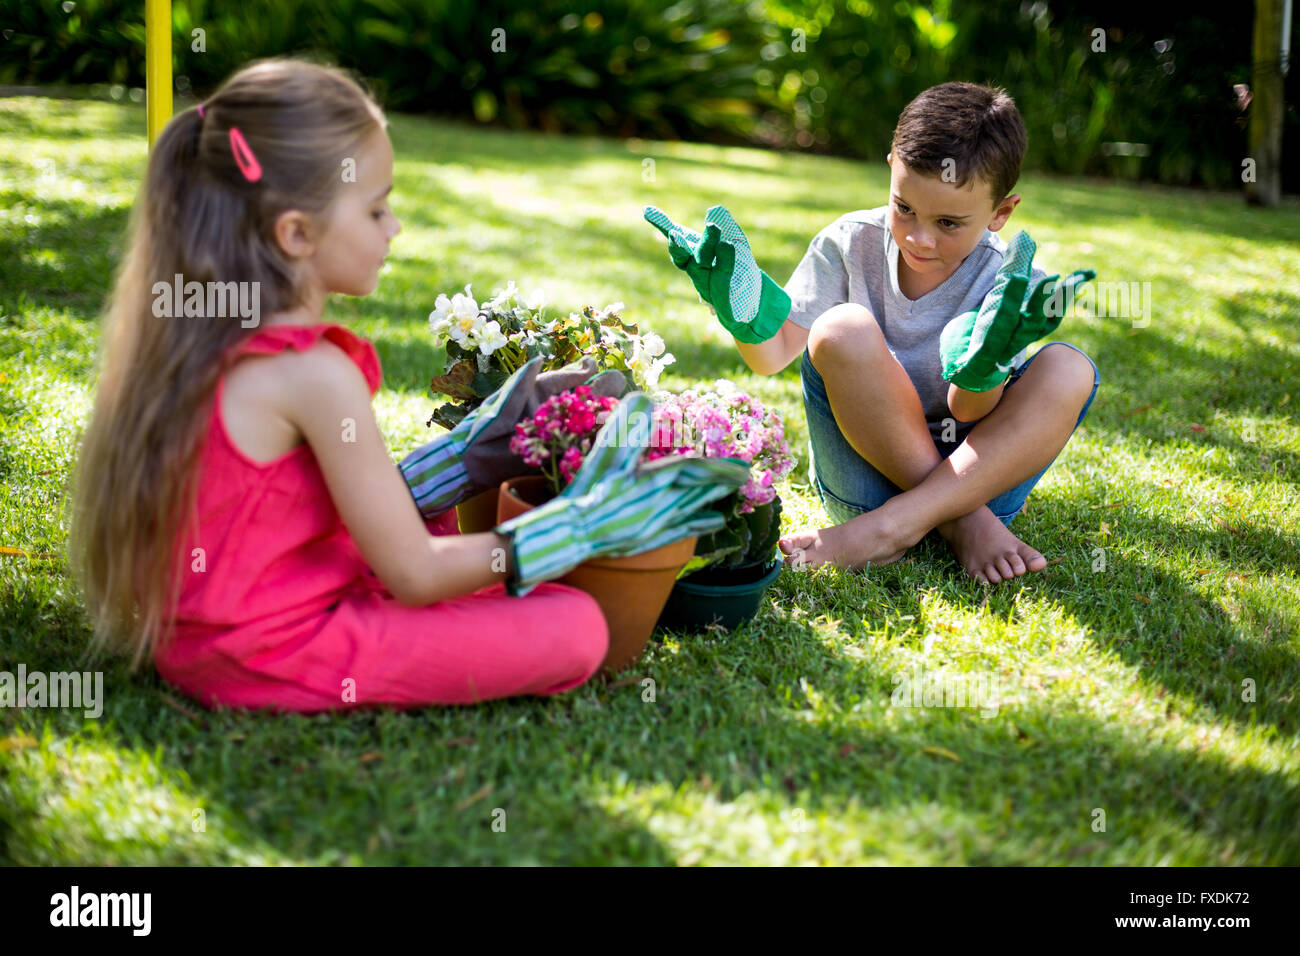 Siblings with flower pots sitting in yard - Stock Image